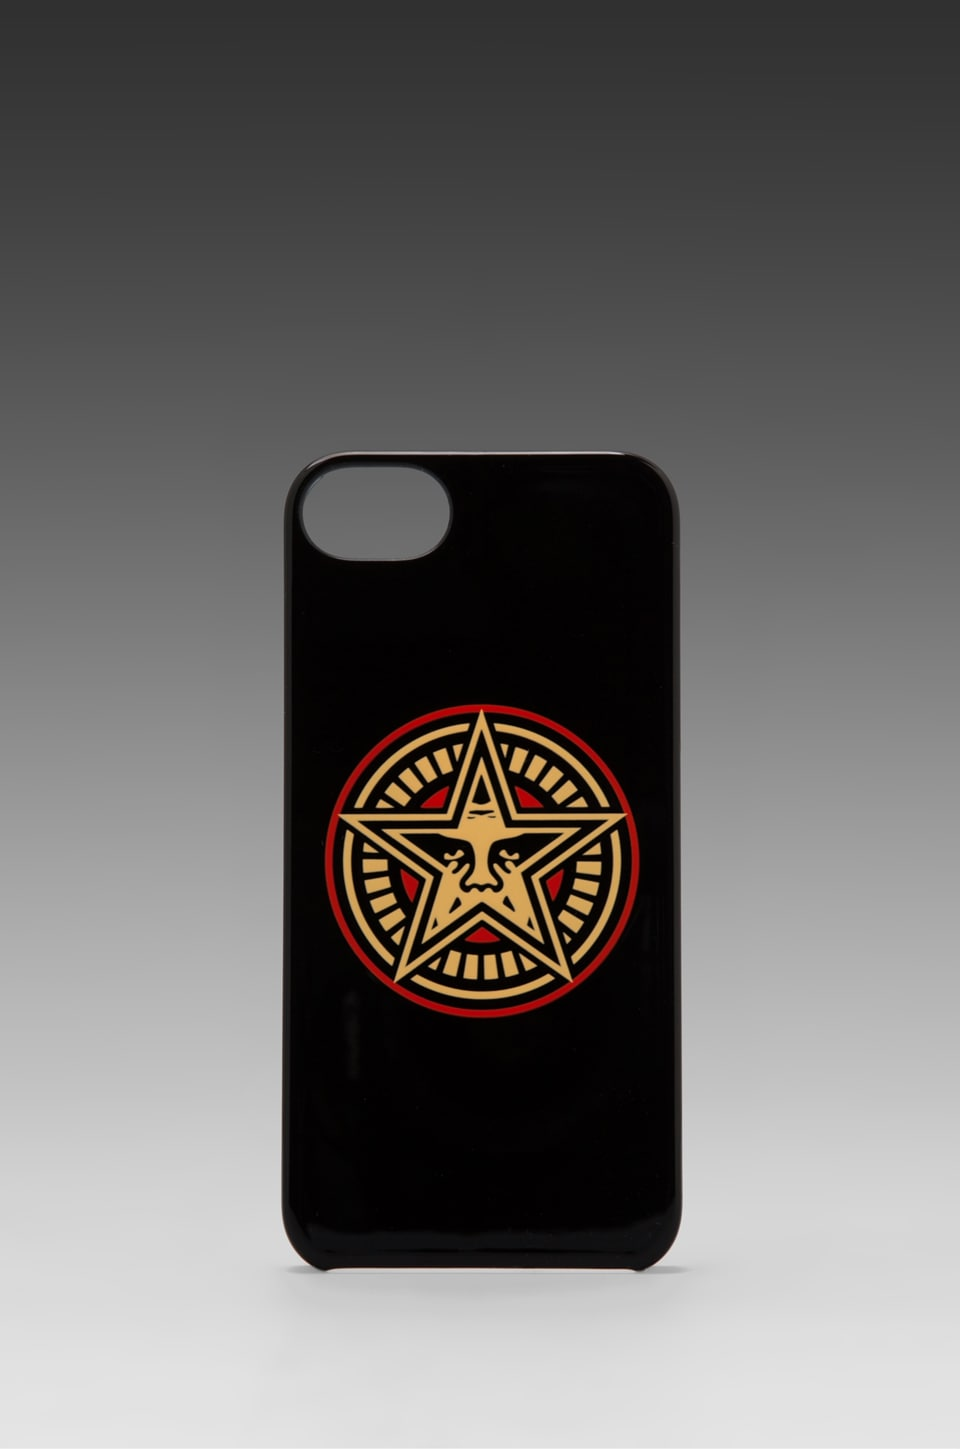 INCASE Shepard Fairey iPhone 5 Snap Case in Star Gear